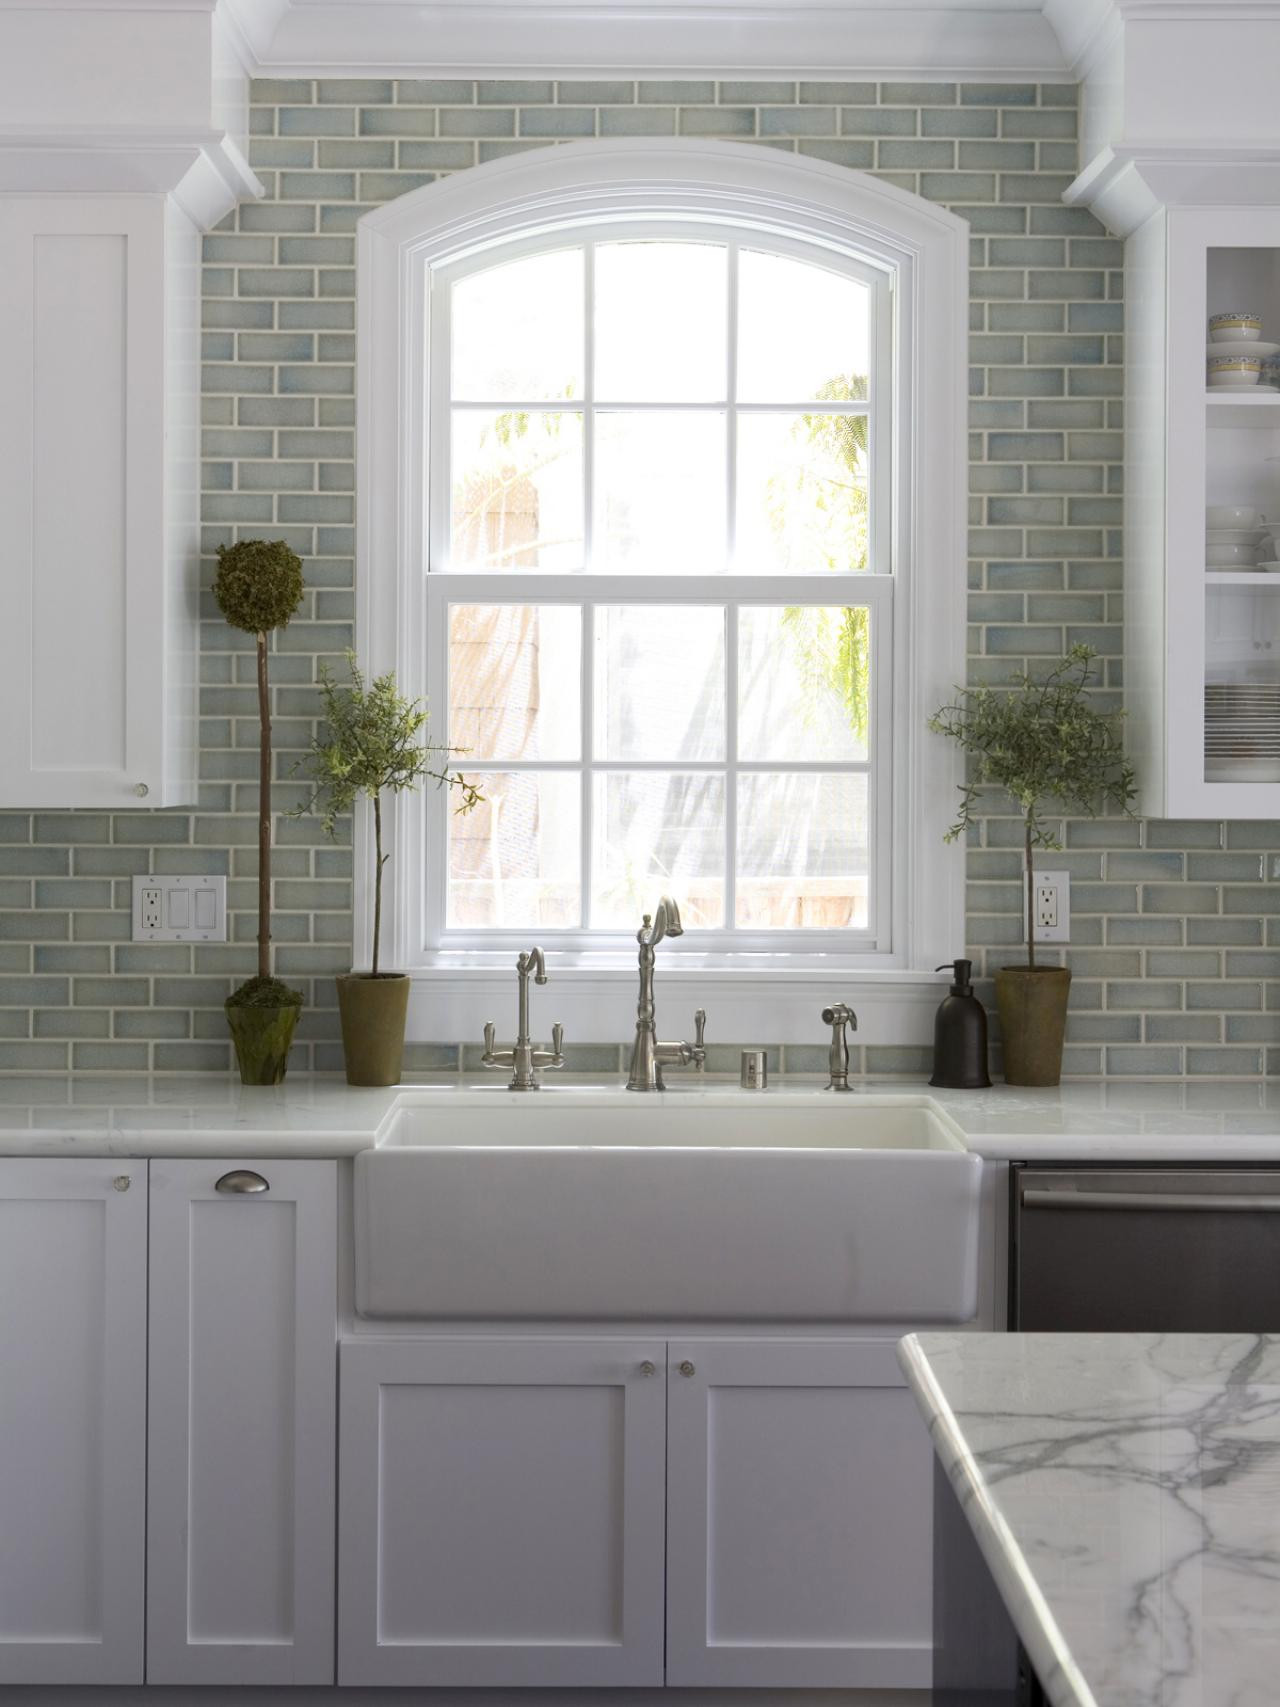 Kitchen Backsplash Design Kitchen Window Treatments Hgtv & Ideas